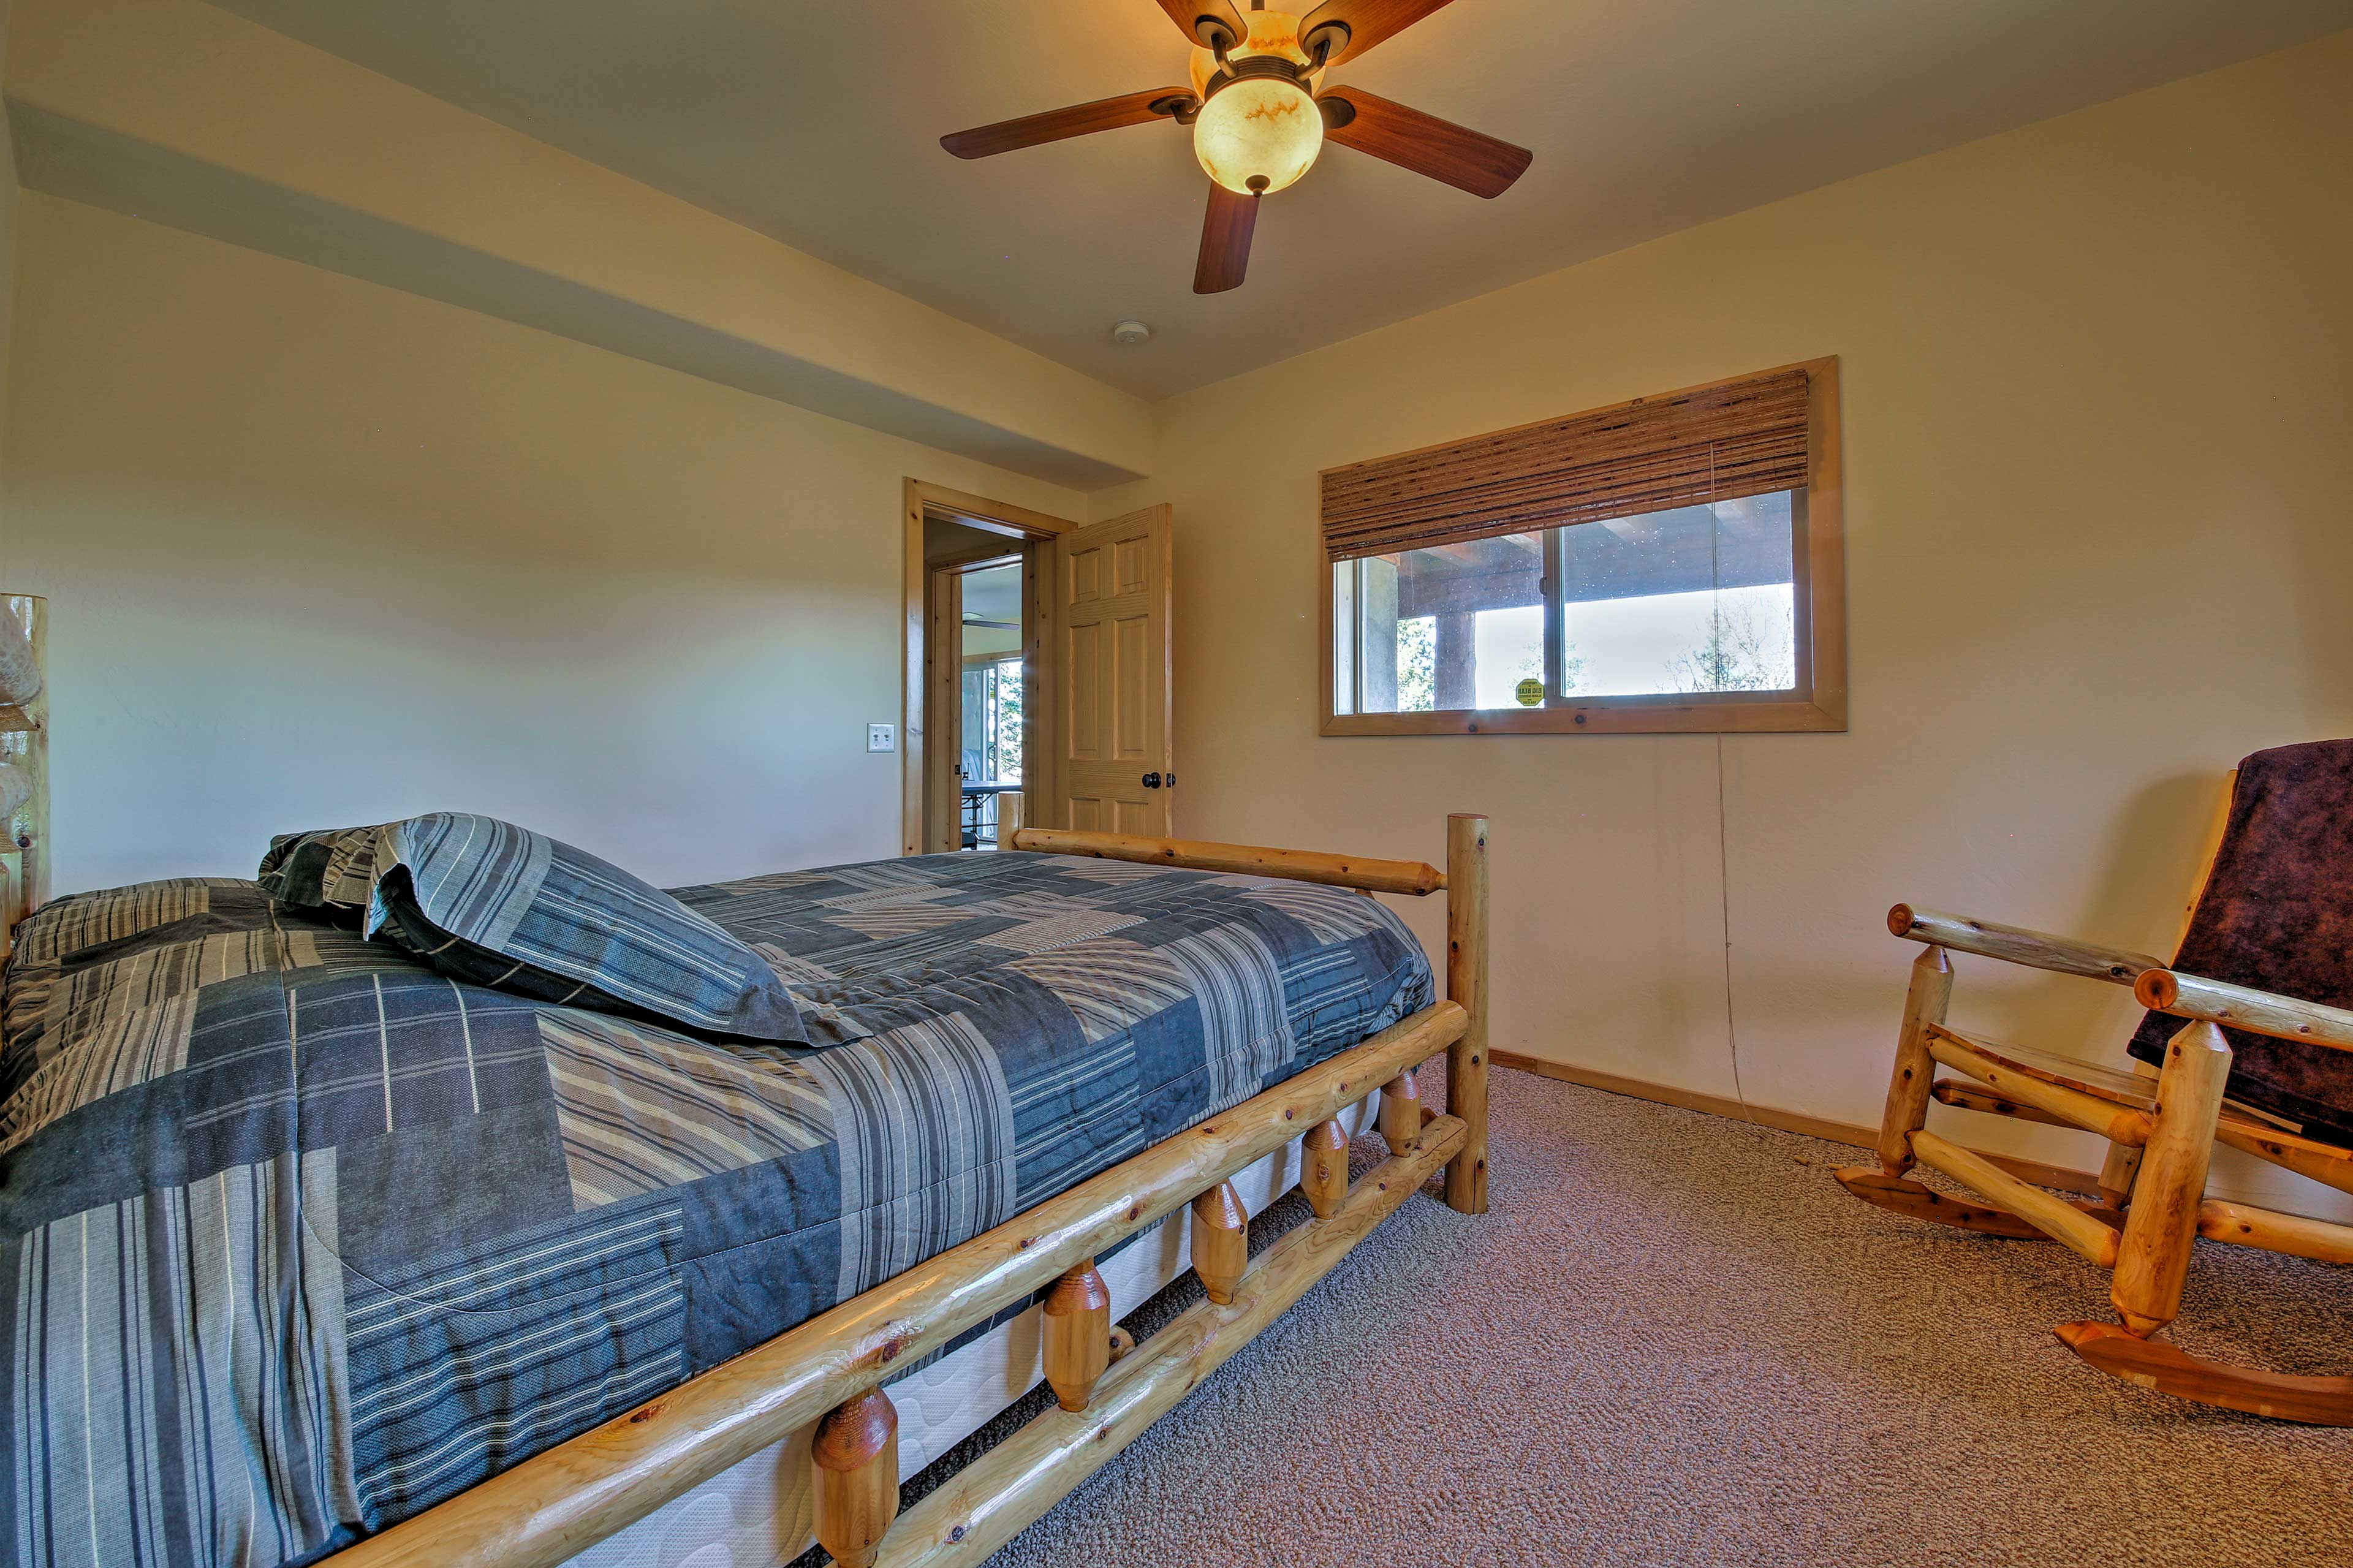 The lower level contains the 4th bedroom with a queen-sized bed.